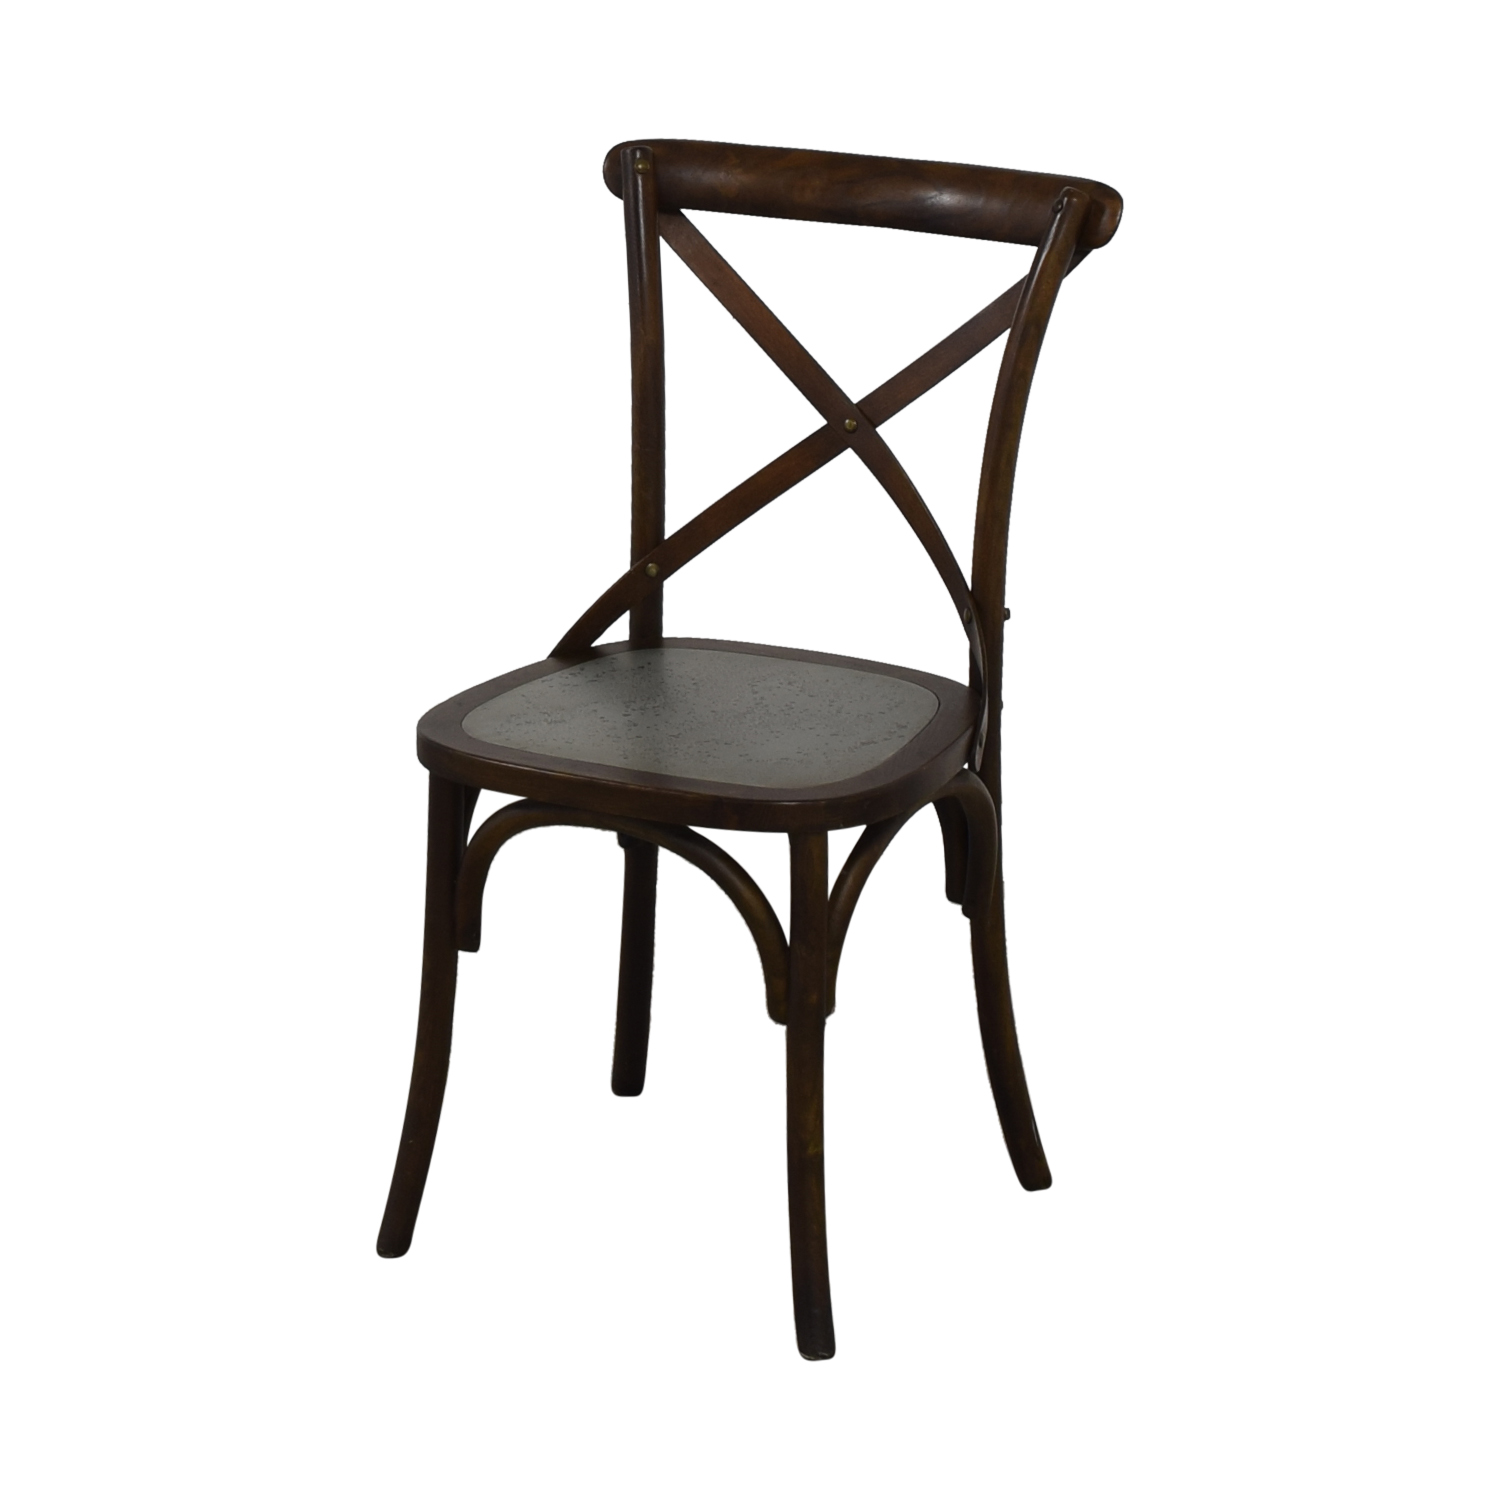 Sitcom Furniture Sitcom Furniture Wood and Metal Dining Chairs nj